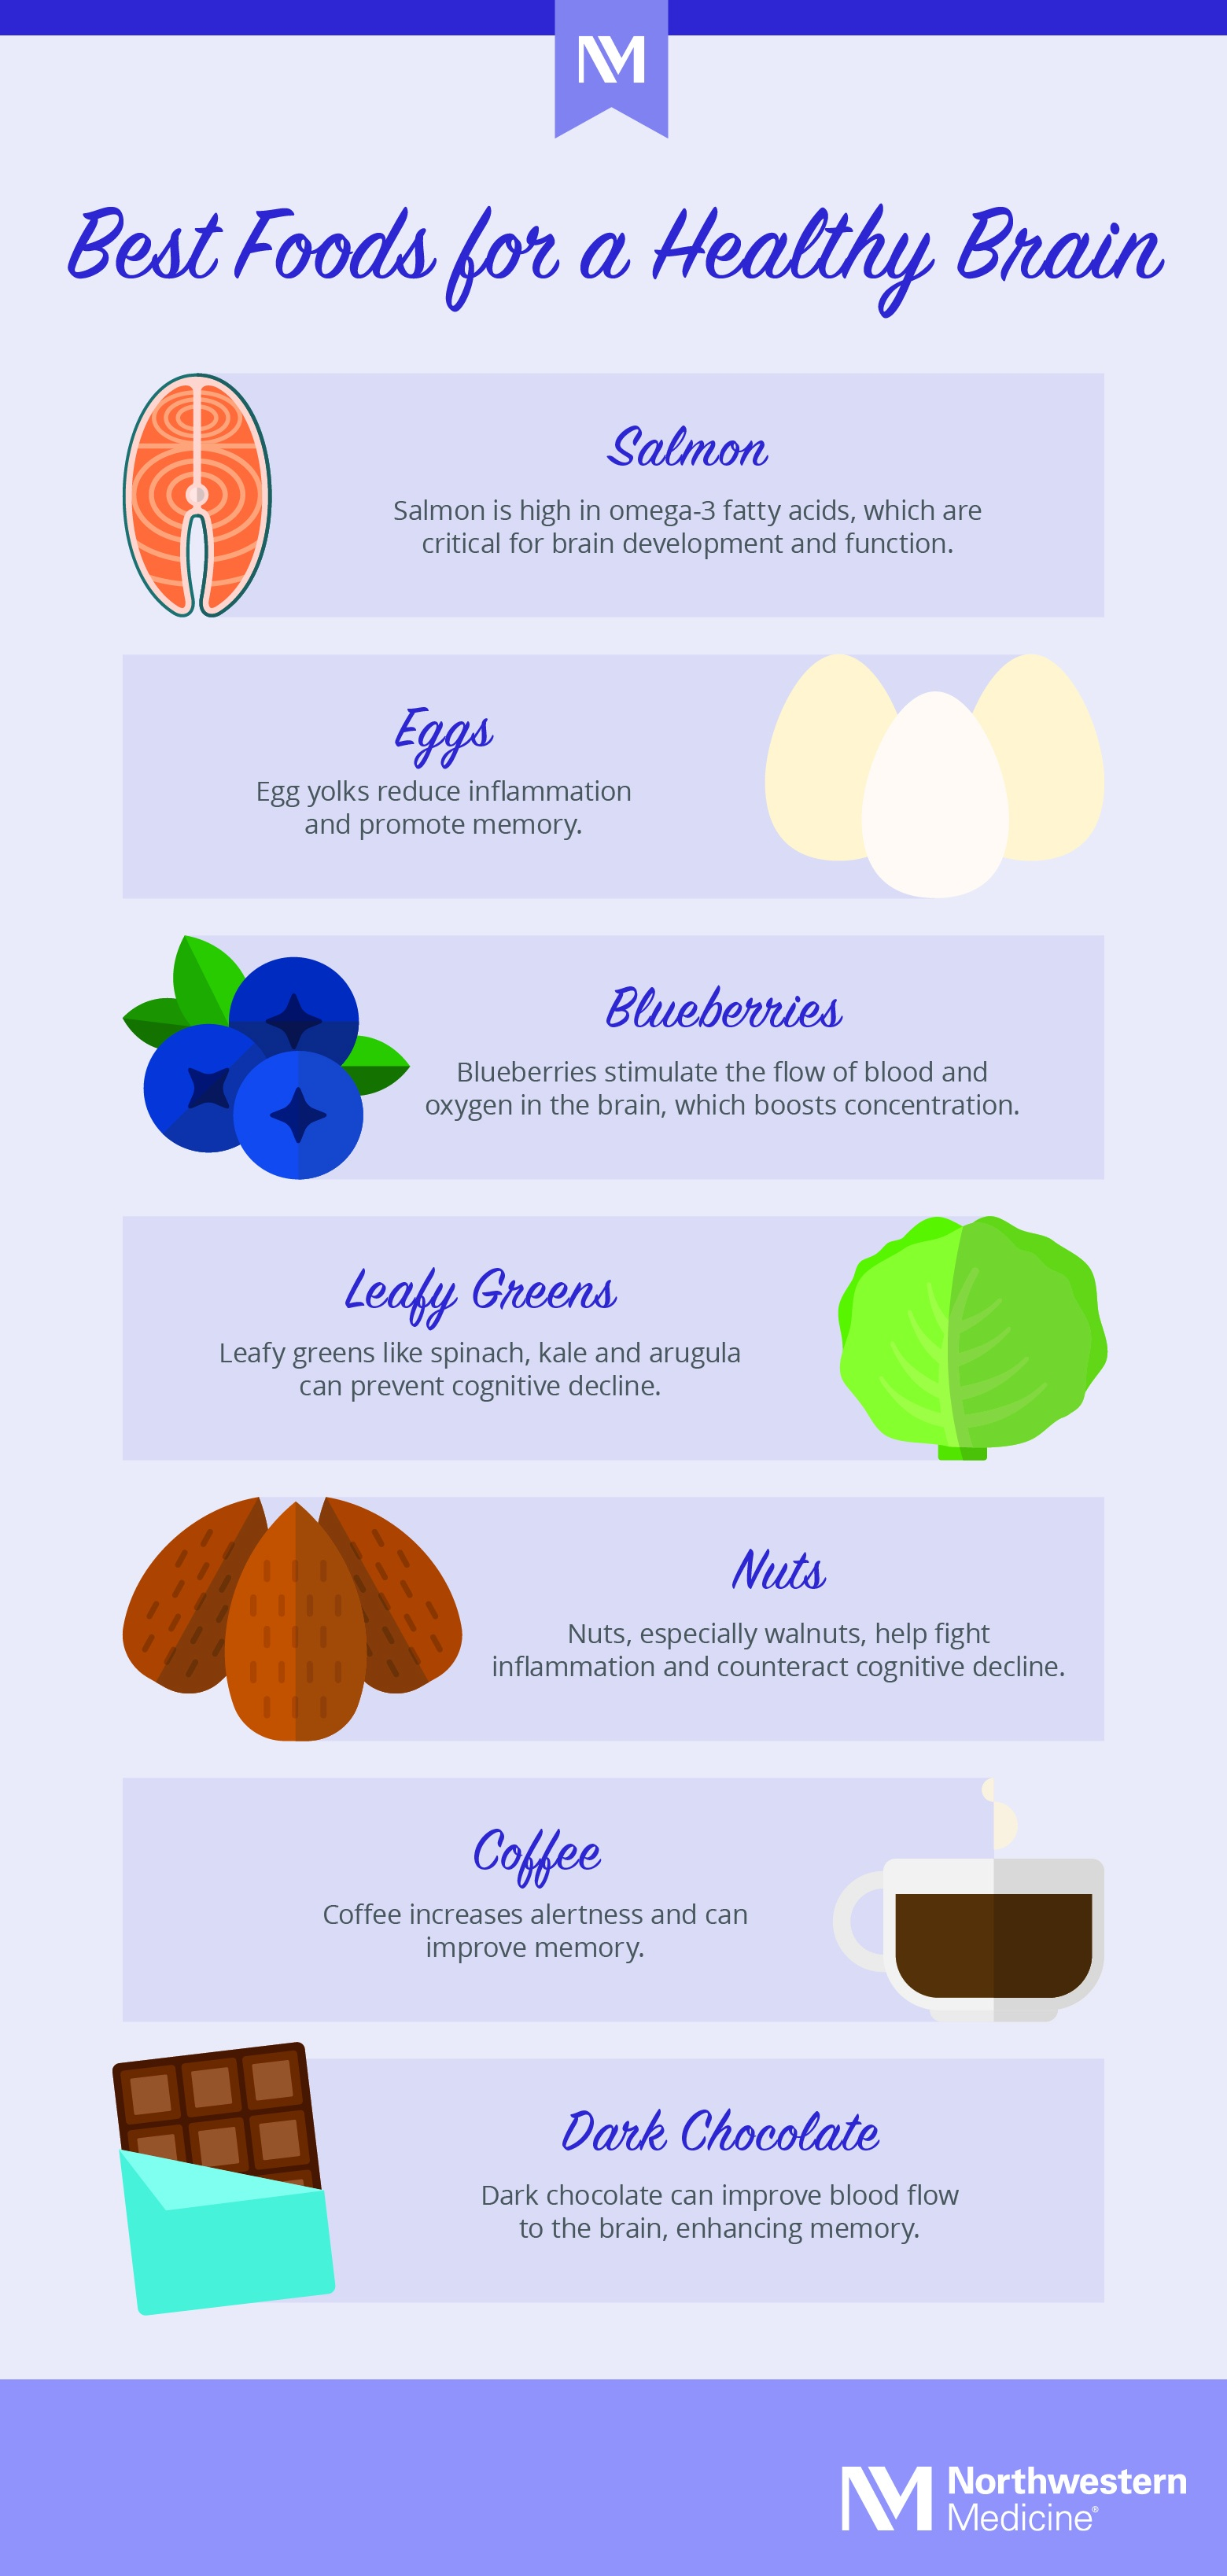 Best Foods for a Healthy Brain infographic